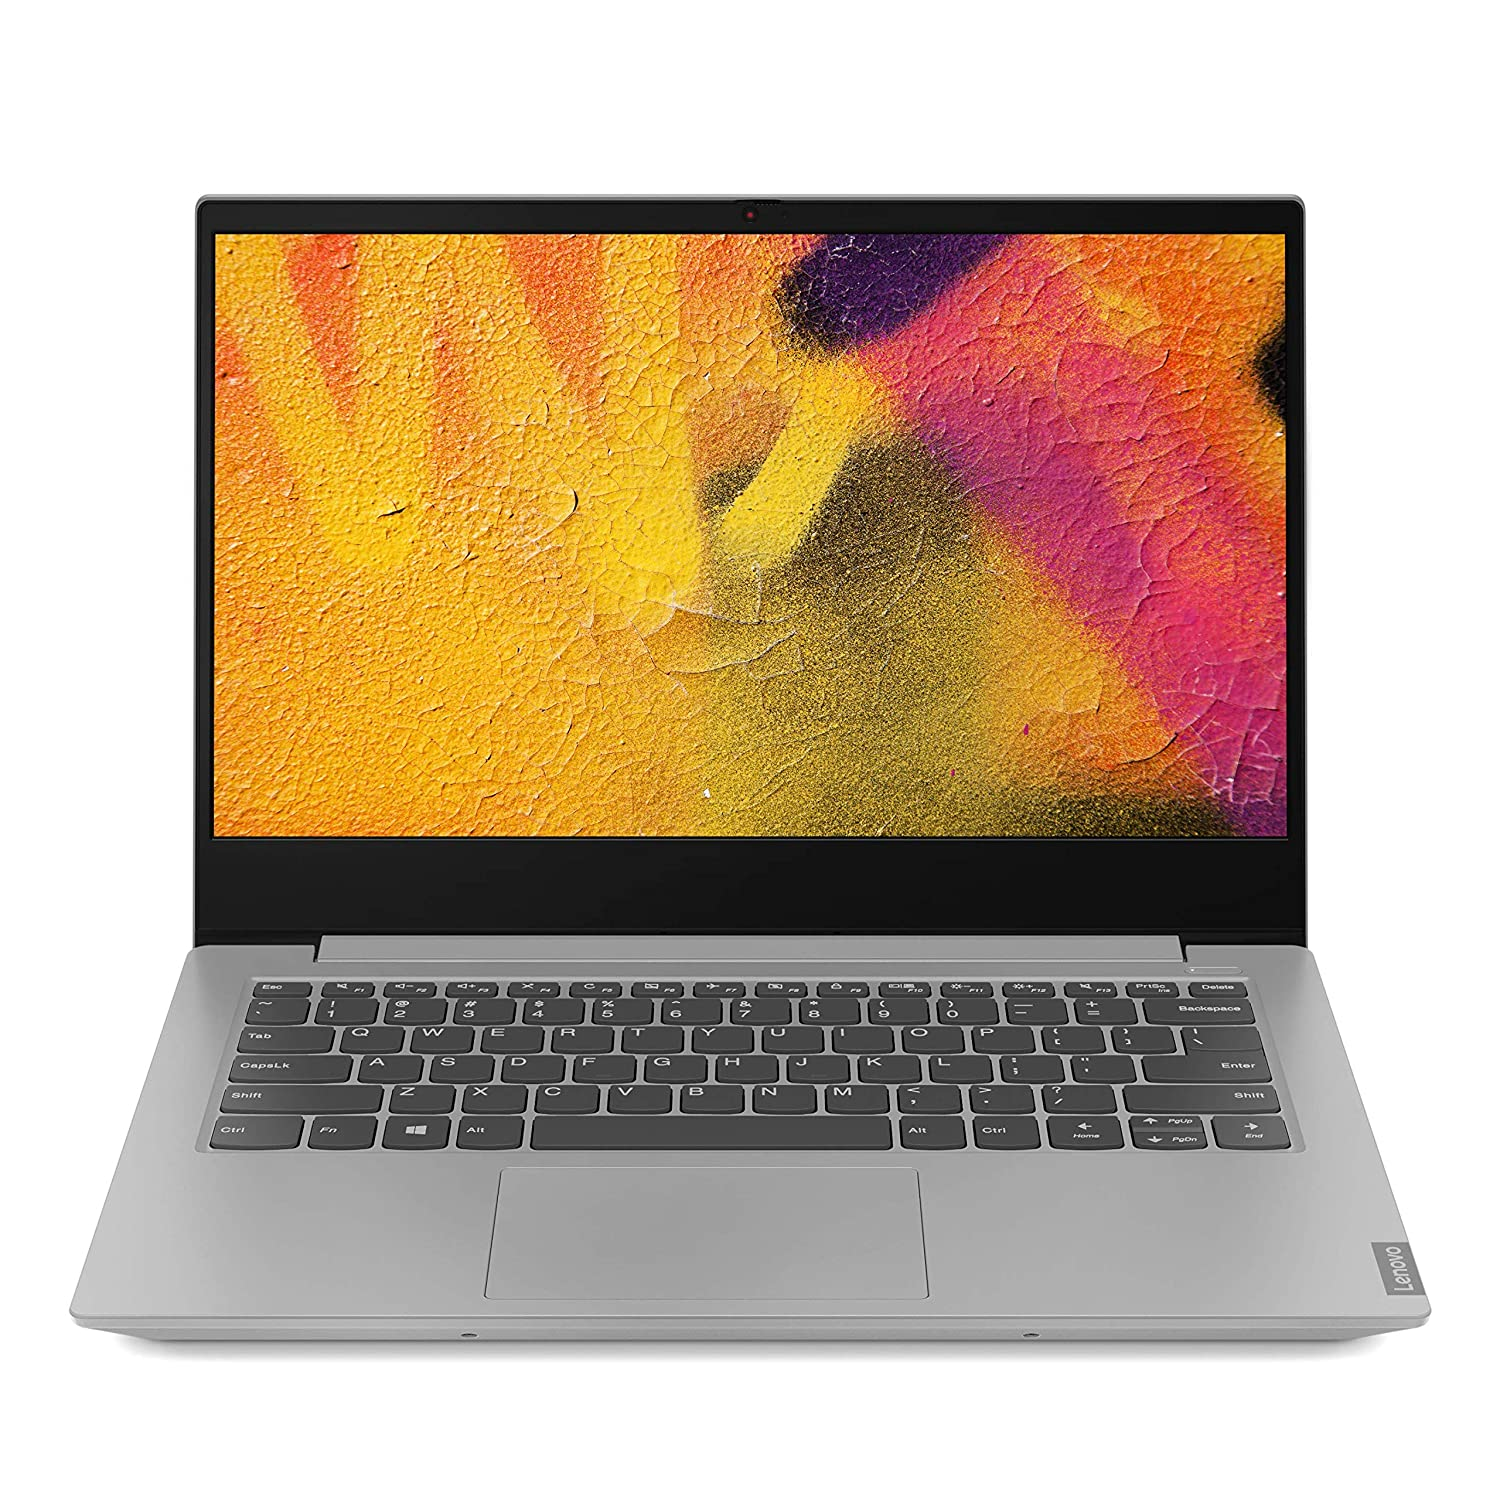 Roll over image to zoom in Lenovo Ideapad S340 10th Generation Intel Core i3 14 inch FHD Thin and Light Laptop